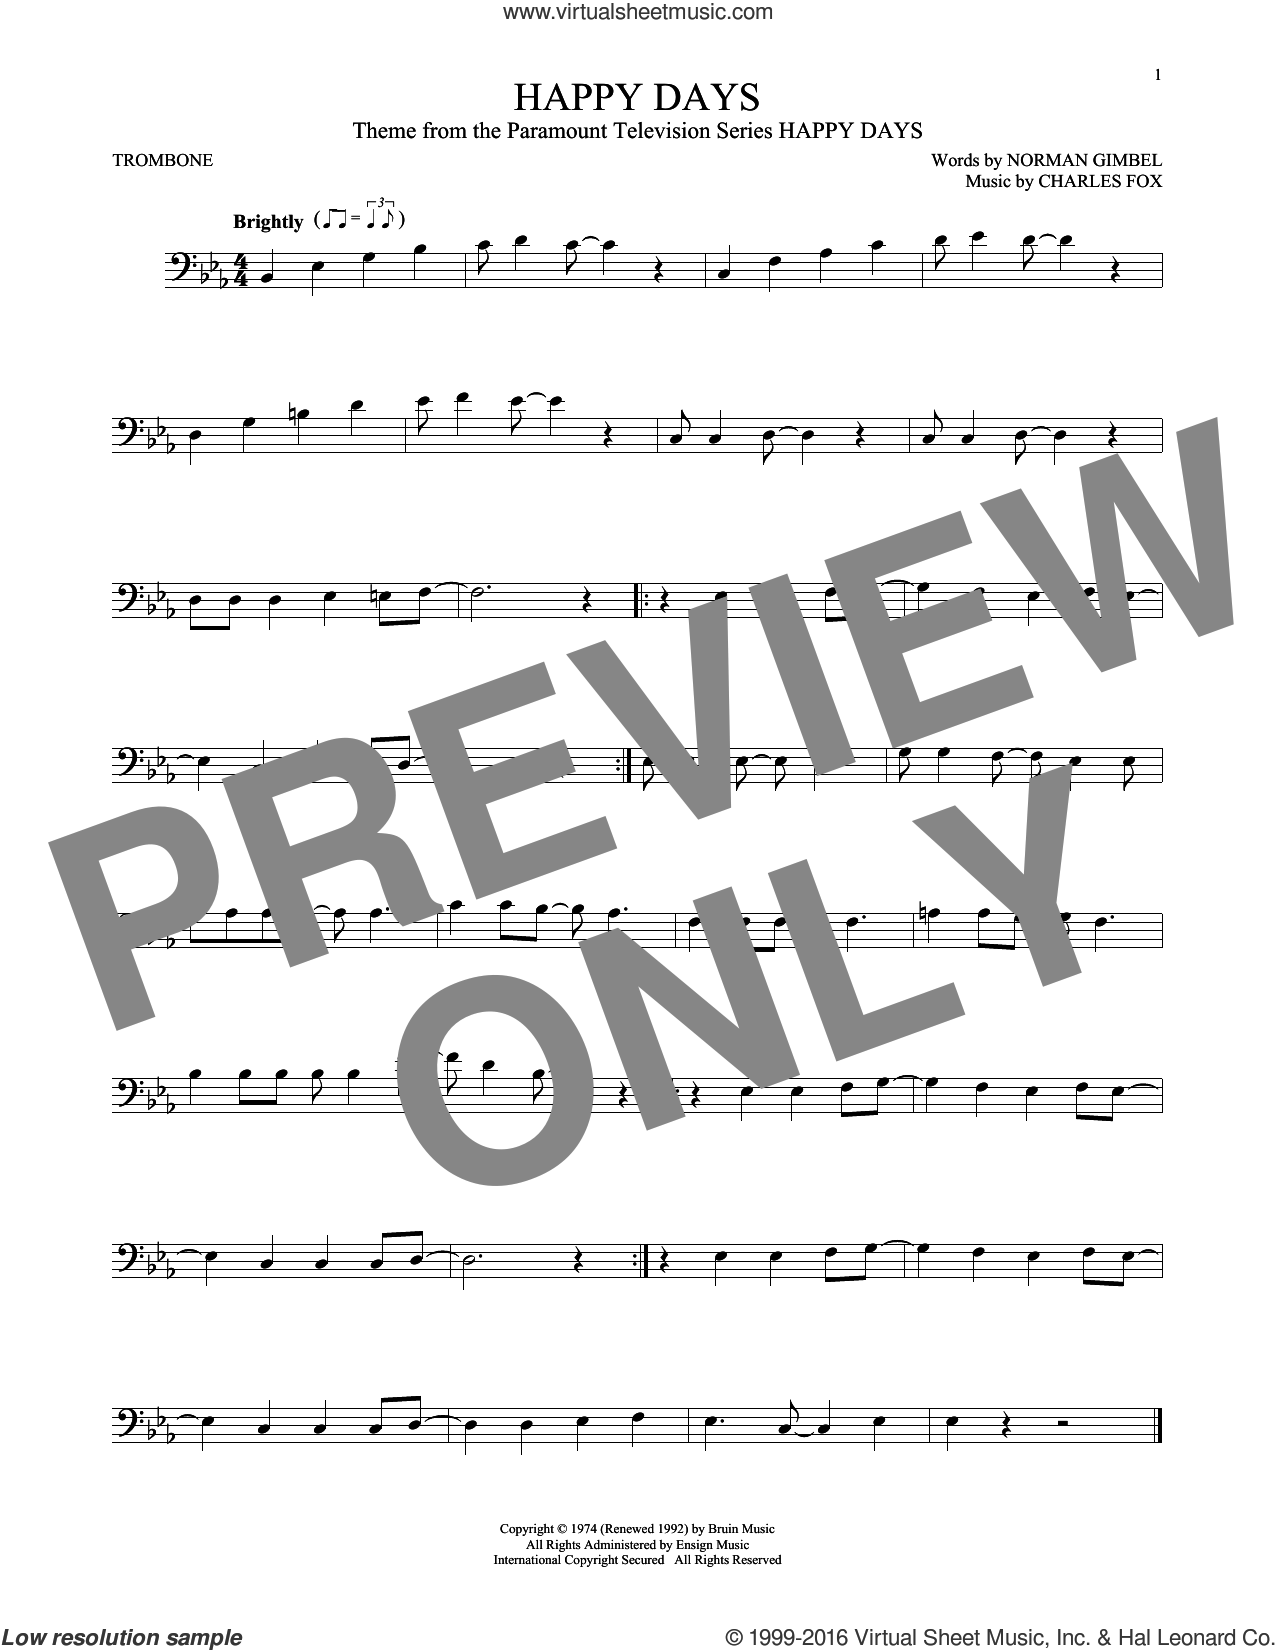 Happy Days sheet music for trombone solo by Norman Gimbel, Charles Fox, Norman Gimbel & Charles Fox and Pratt and McClain, intermediate skill level